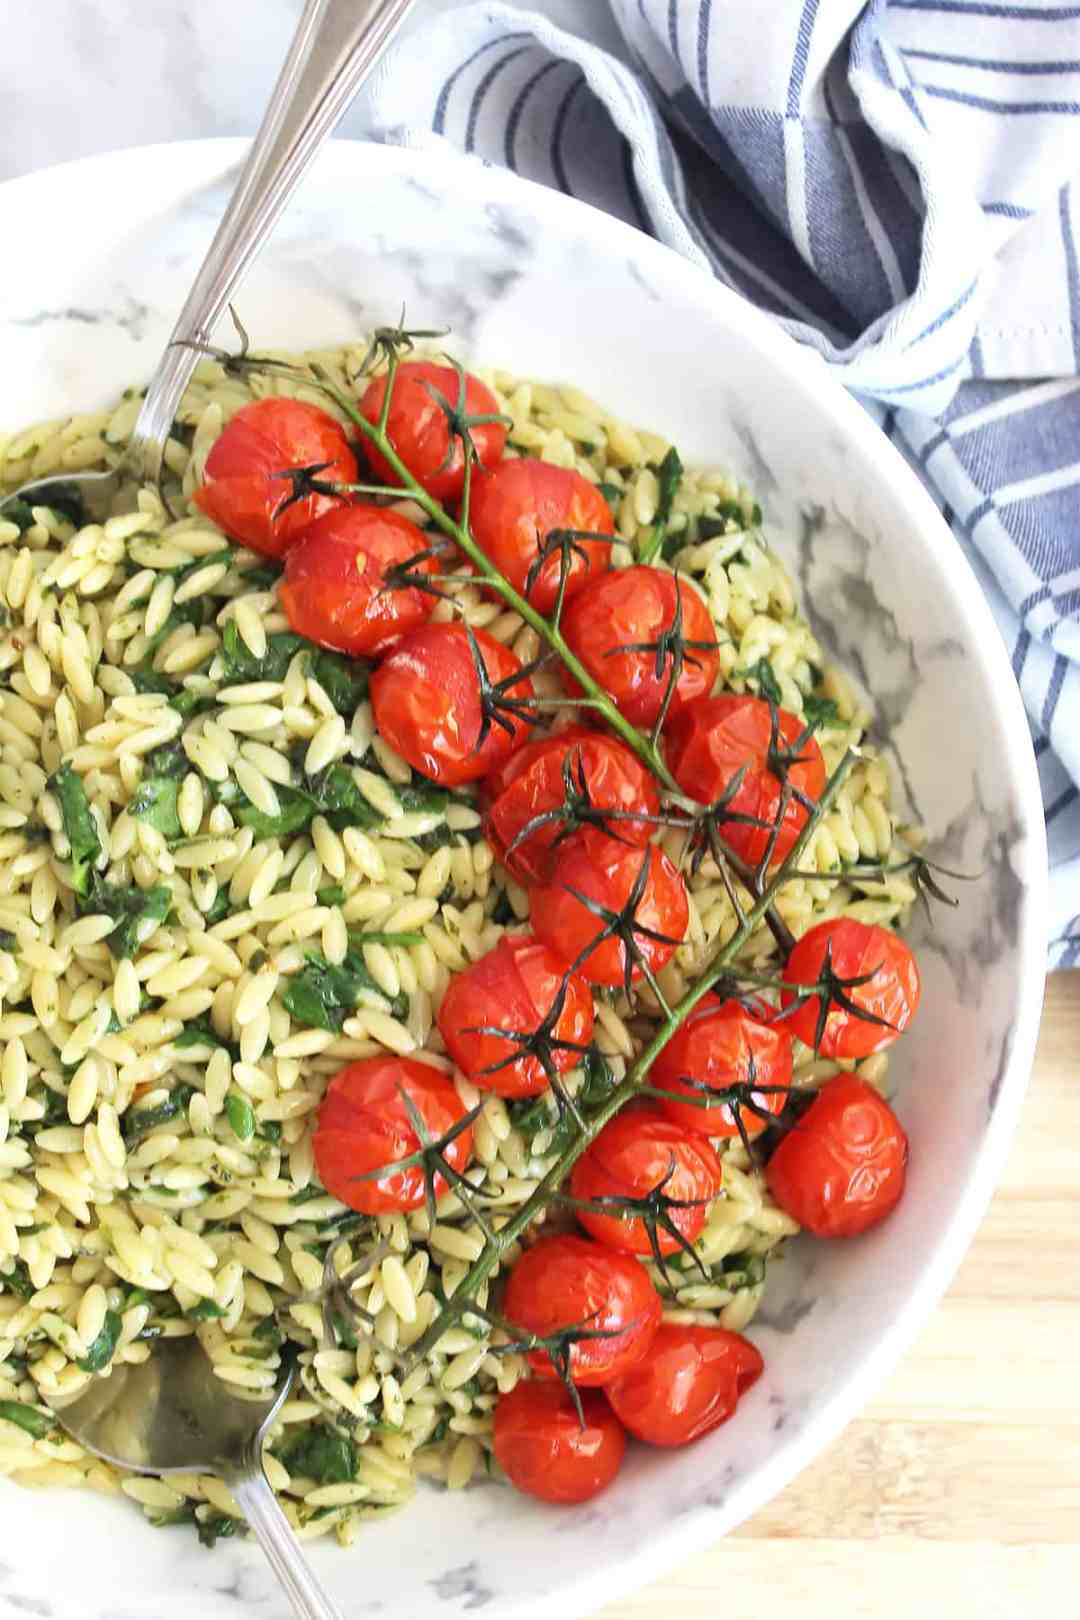 Roasted tomatoes on a bed of spinach orzo salad